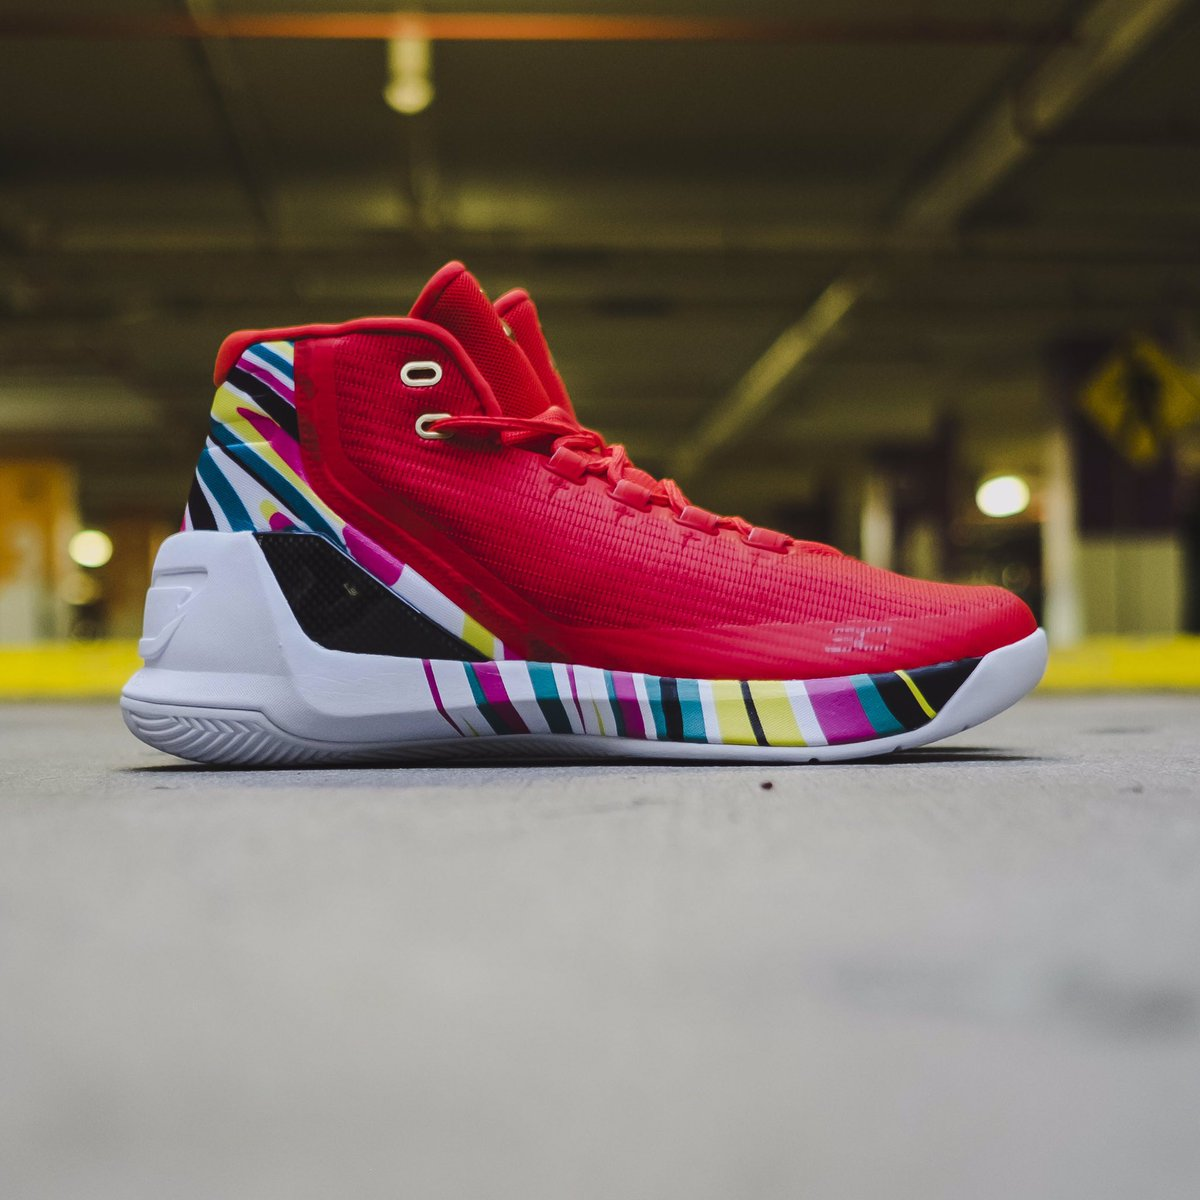 0c455b38e3f5 spain under armour fcd0f 6dd68  usa sole fly on twitter mens ua curry 3 cny  available tomorrow at both locations t